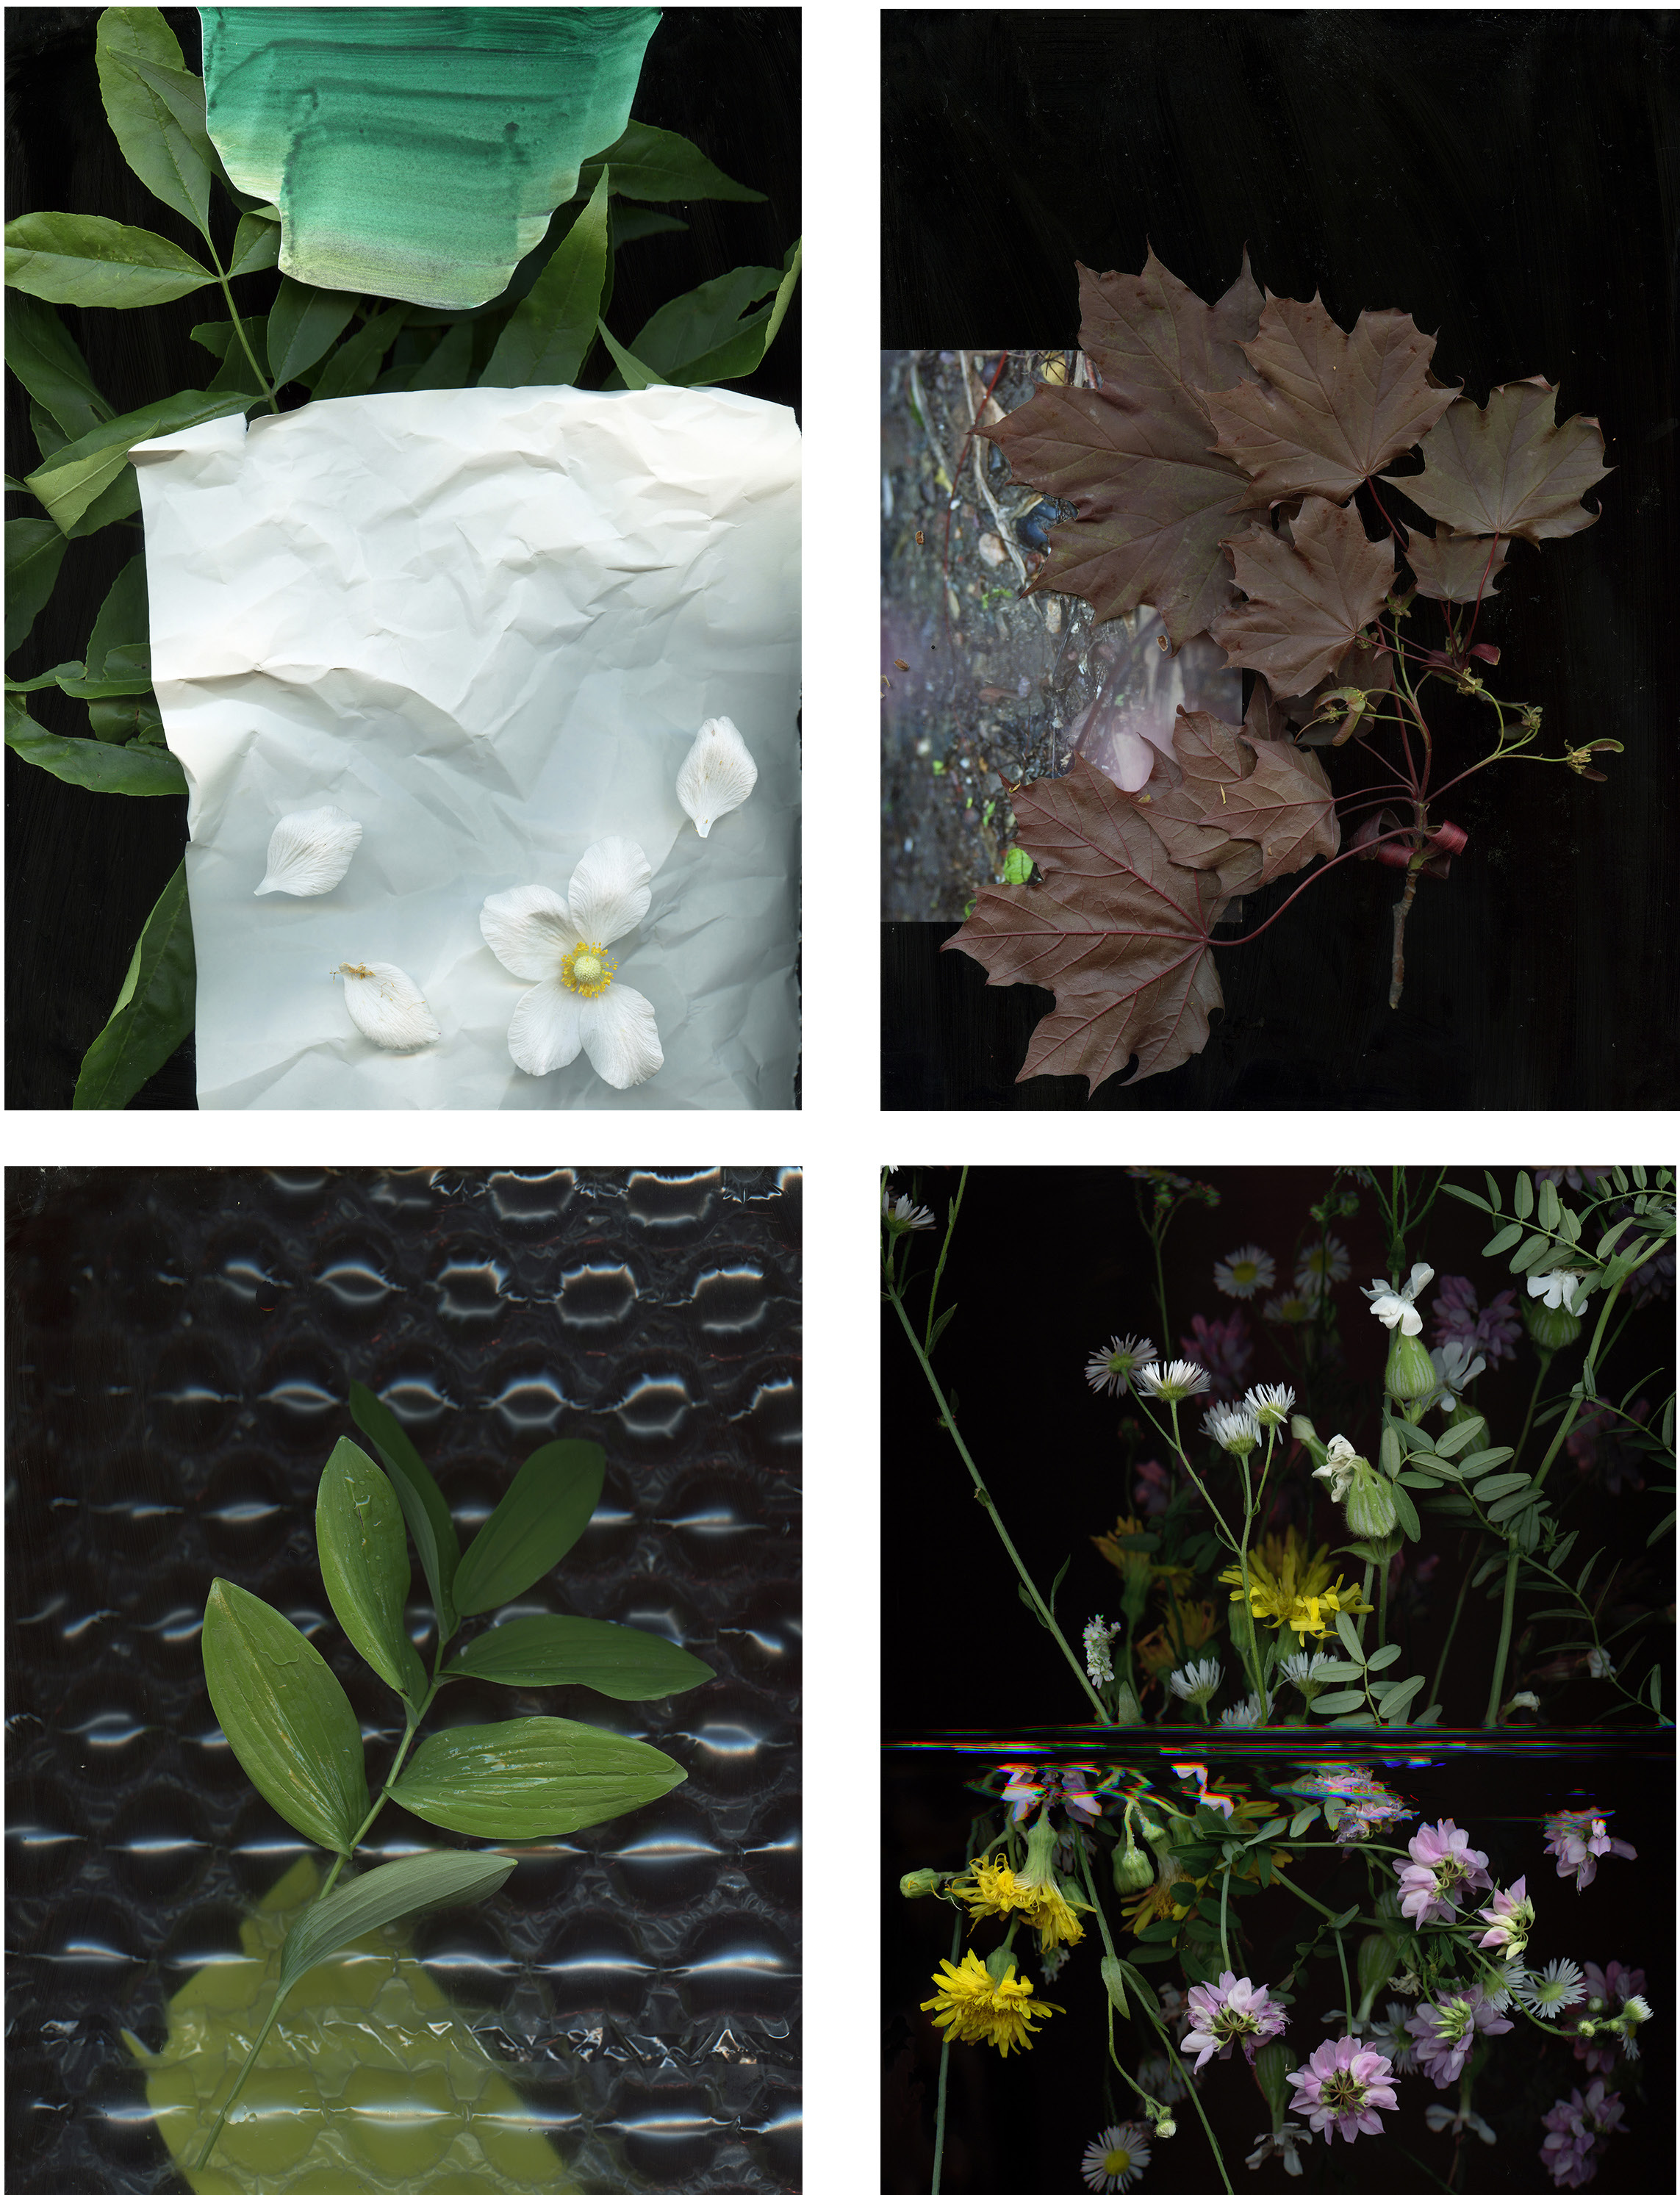 """Clockwise from top left, """"Prairie Construct #23, #5, #37 & #18,"""" Archival Inkjet Print, each image 36 x 54 inches, by Regan Golden, 2015"""